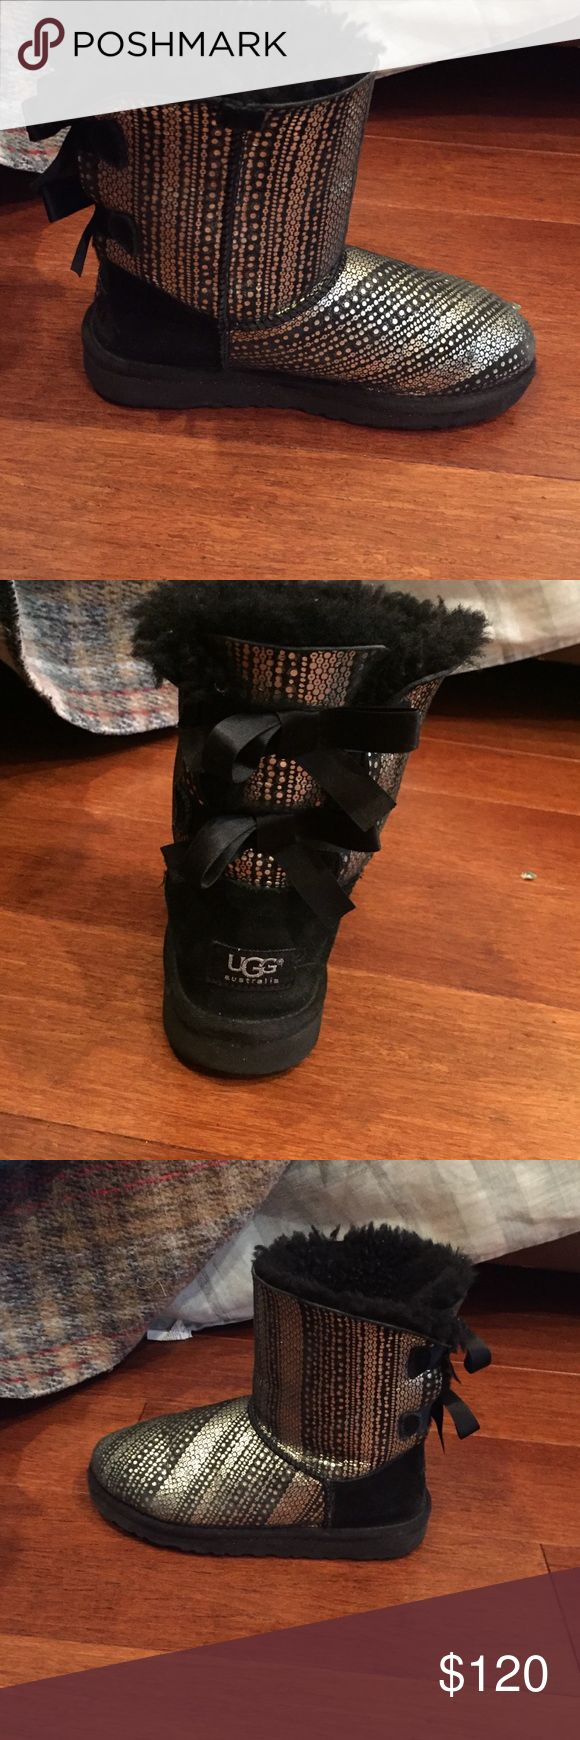 Authentic Girls Ugg Boots - Size 3 - 2 Pairs Girls Ugg Boots Size 3 in great shape! I have twins, so I have 2 identical pair! UGG Shoes Winter & Rain Boots